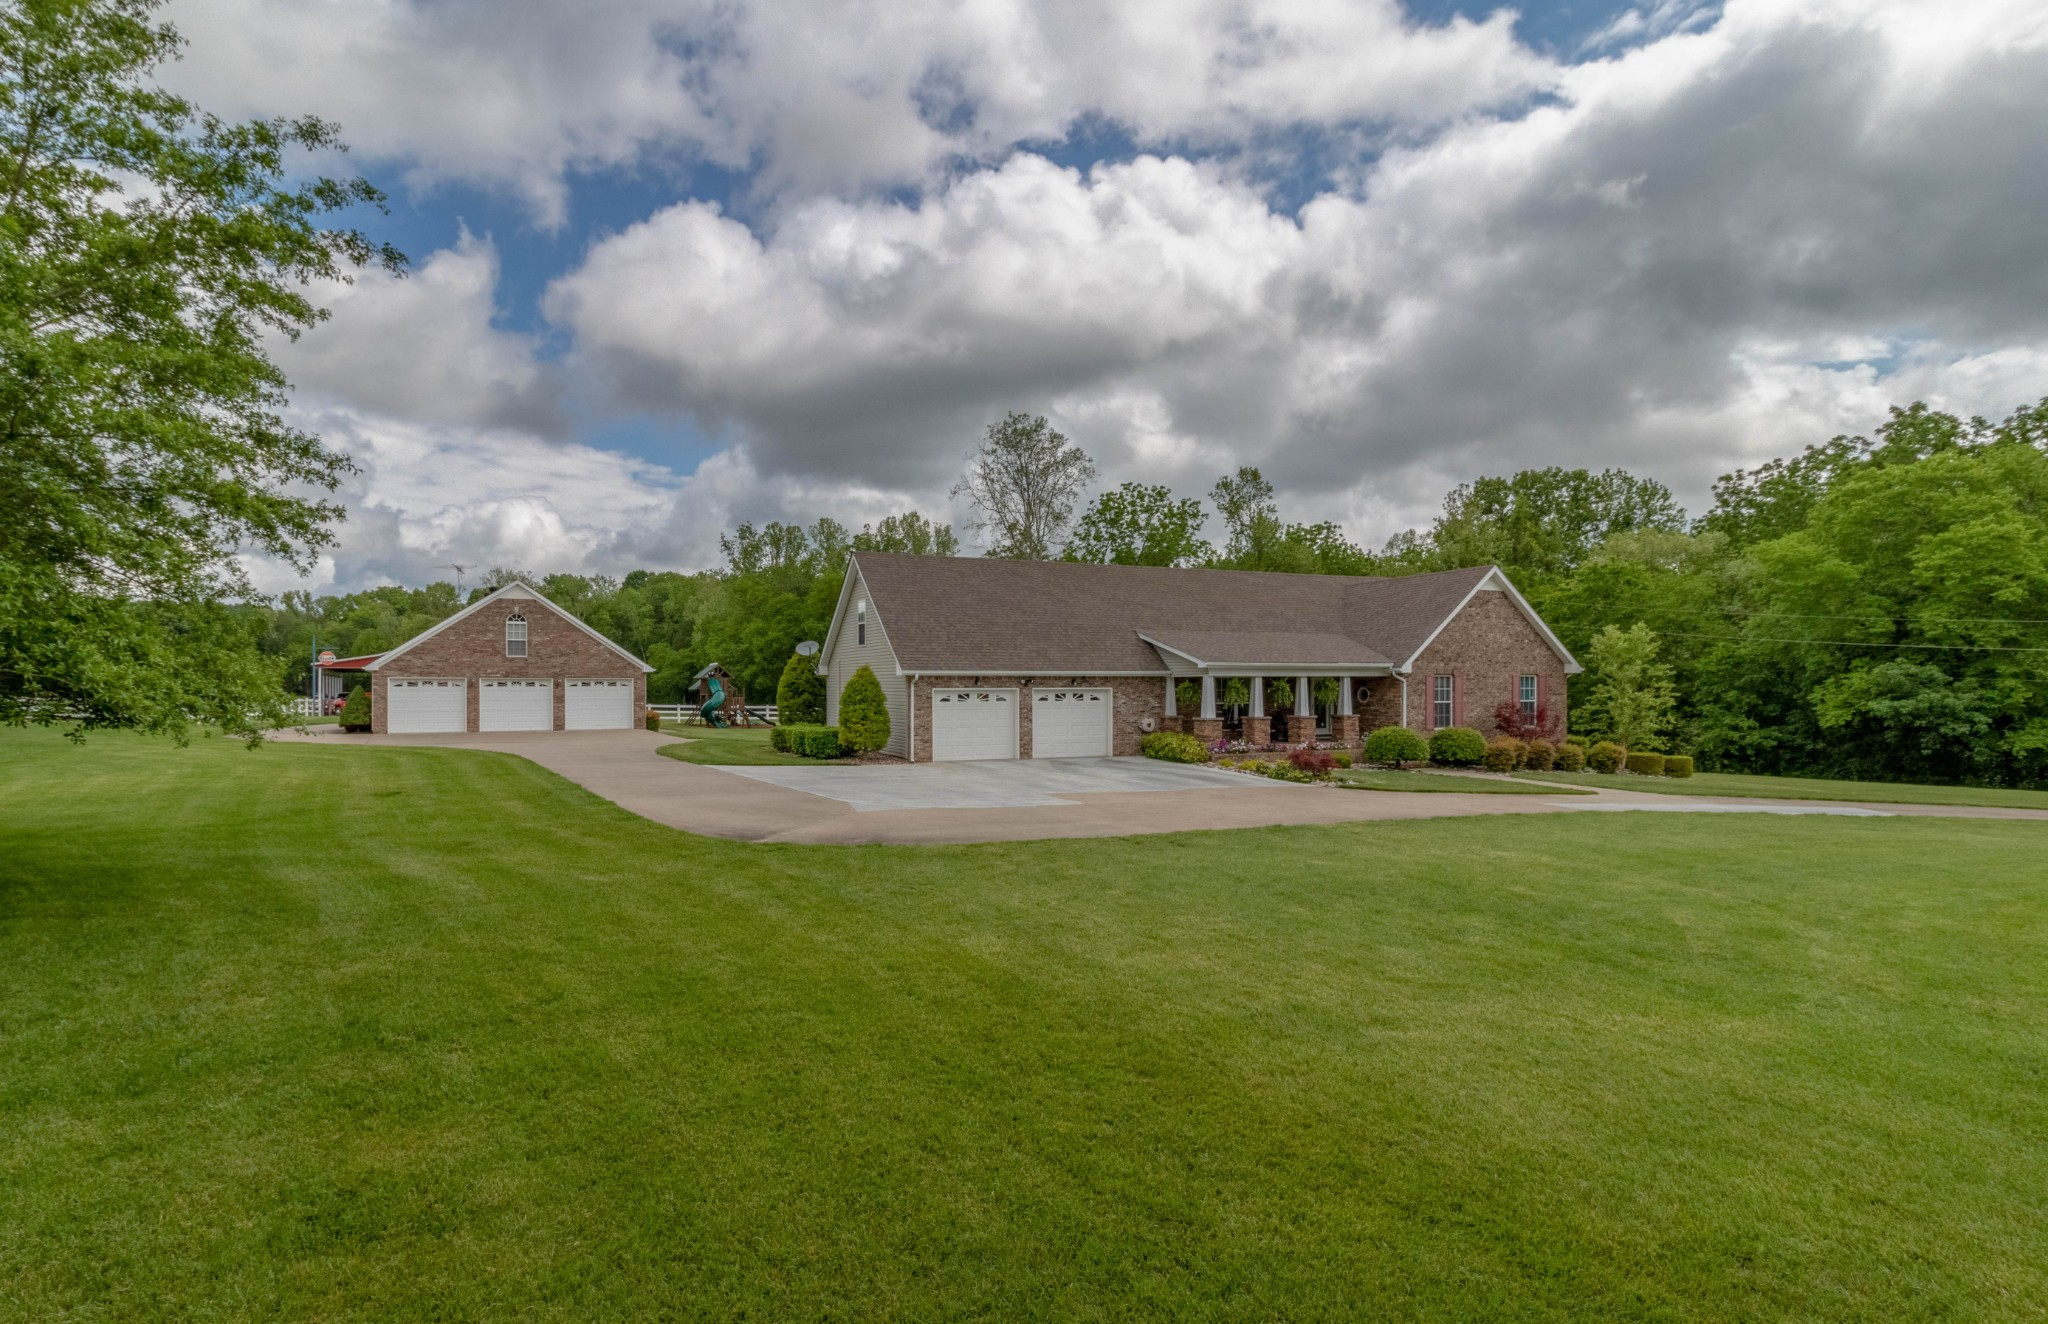 730 Indian Creek Rd Property Photo - Cumberland Furnace, TN real estate listing